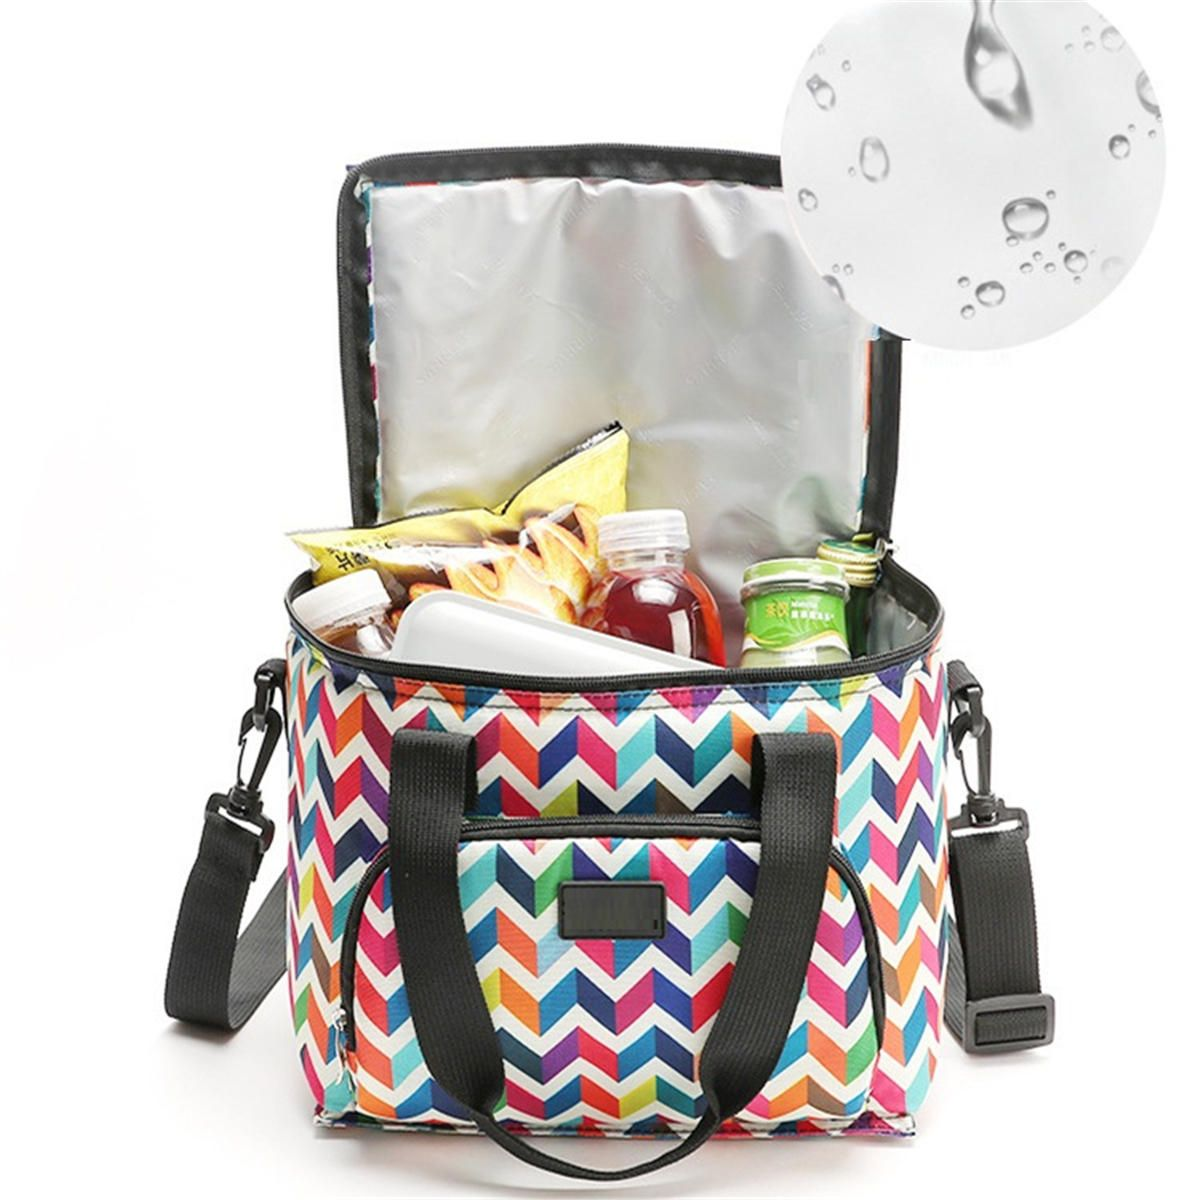 IDH US$10.96 10L Picnic Bag Thermal Insulated Thermal Cooler Insulated Tote Lunch Food Container BBQ Storage Box